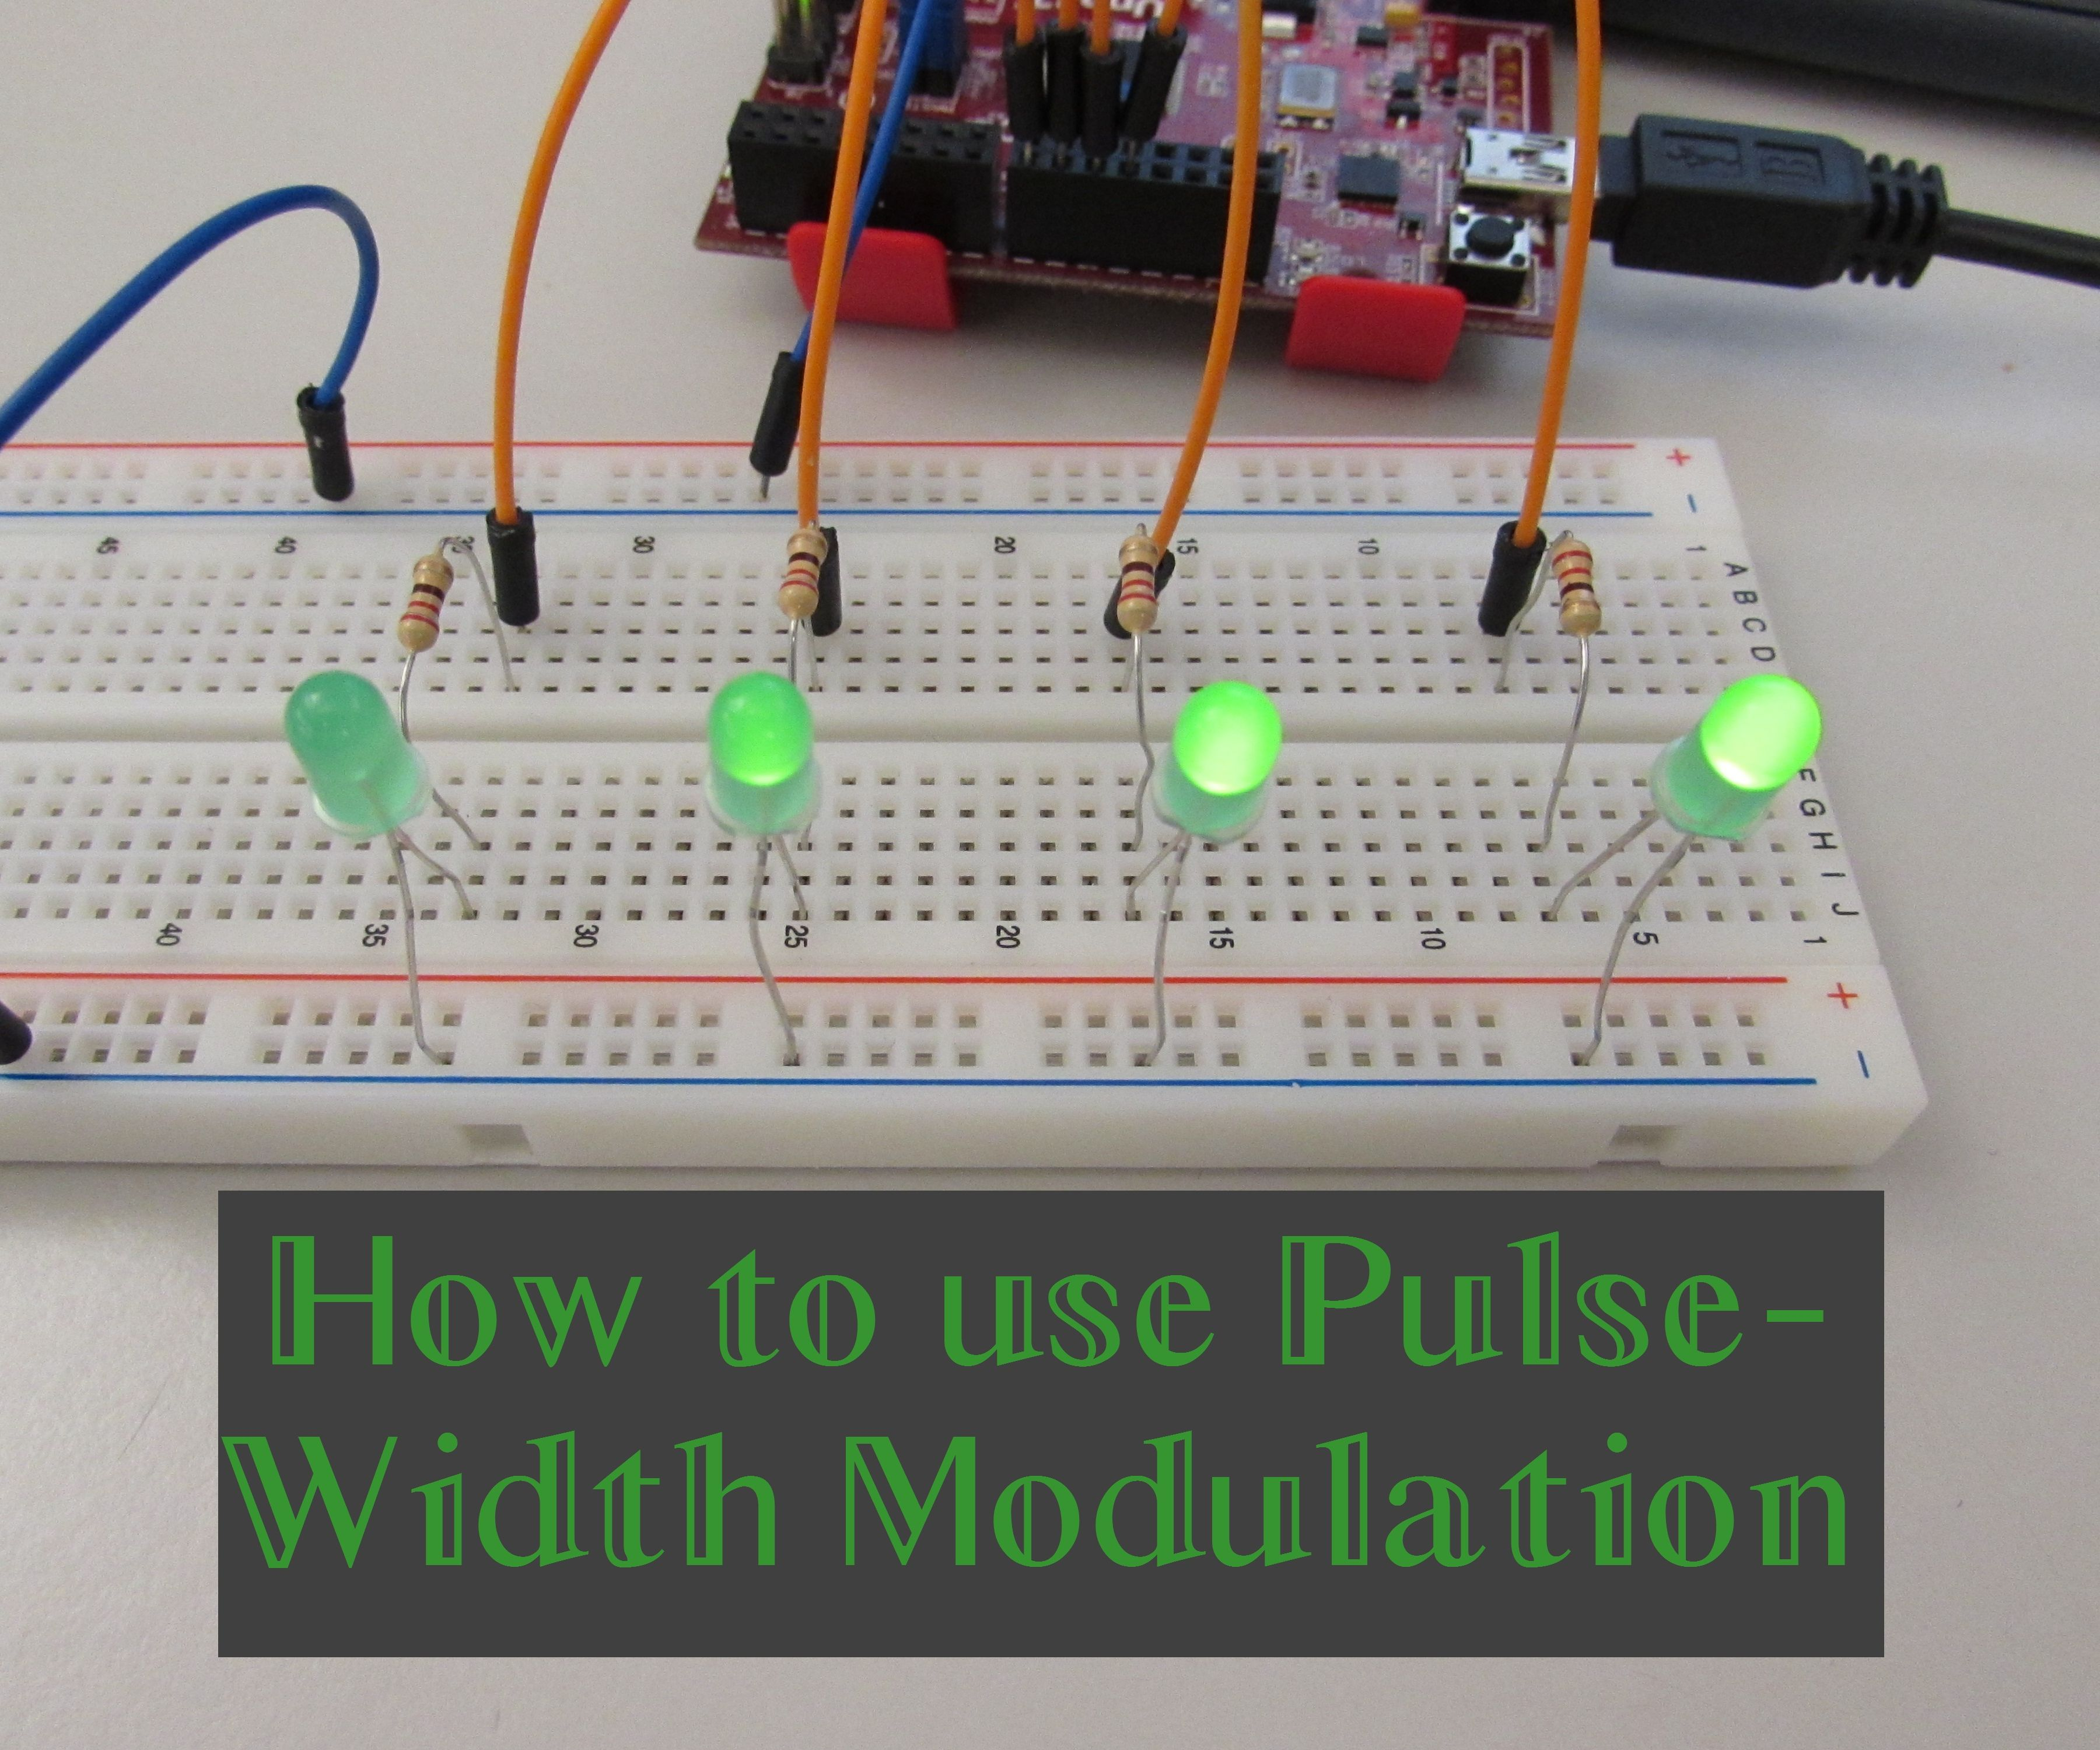 How to use Pulse-Width Modulation